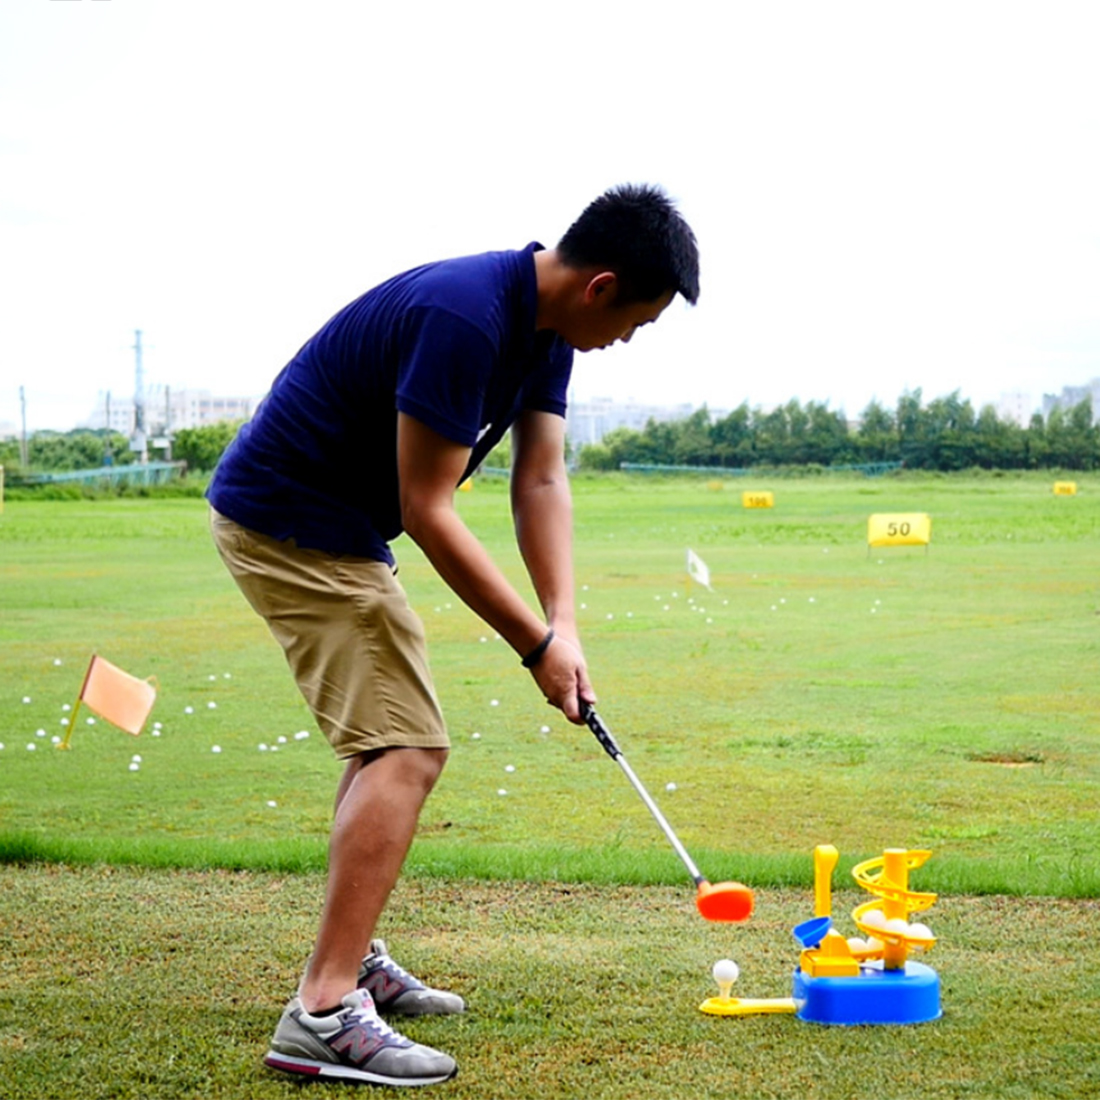 2019 New Arrival Kids Fun QC101 Golf Practice Trainer Machine Interesting Outdoor Sports Gift Toys for Children - Red/Yellow